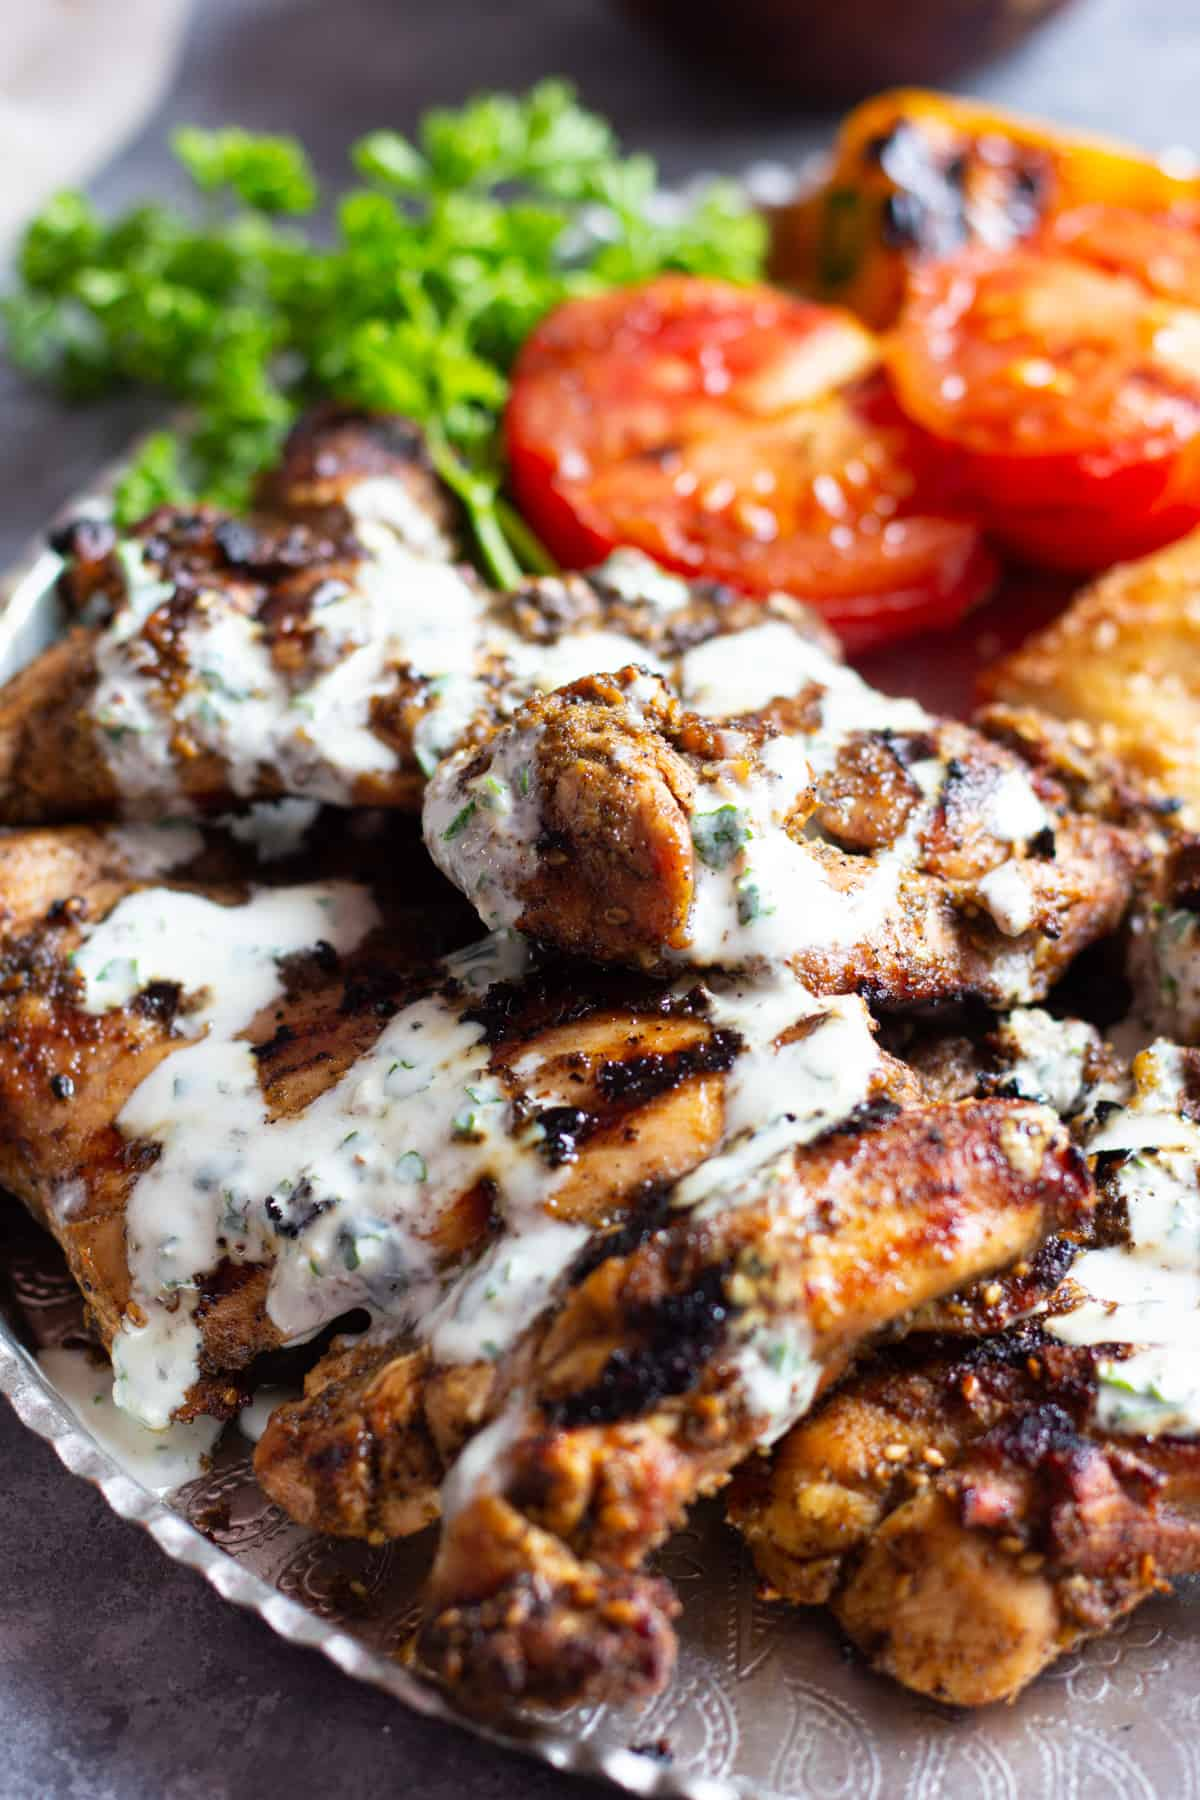 Zaatar chicken served with yogurt sauce on a platter with grilled tomatoes.